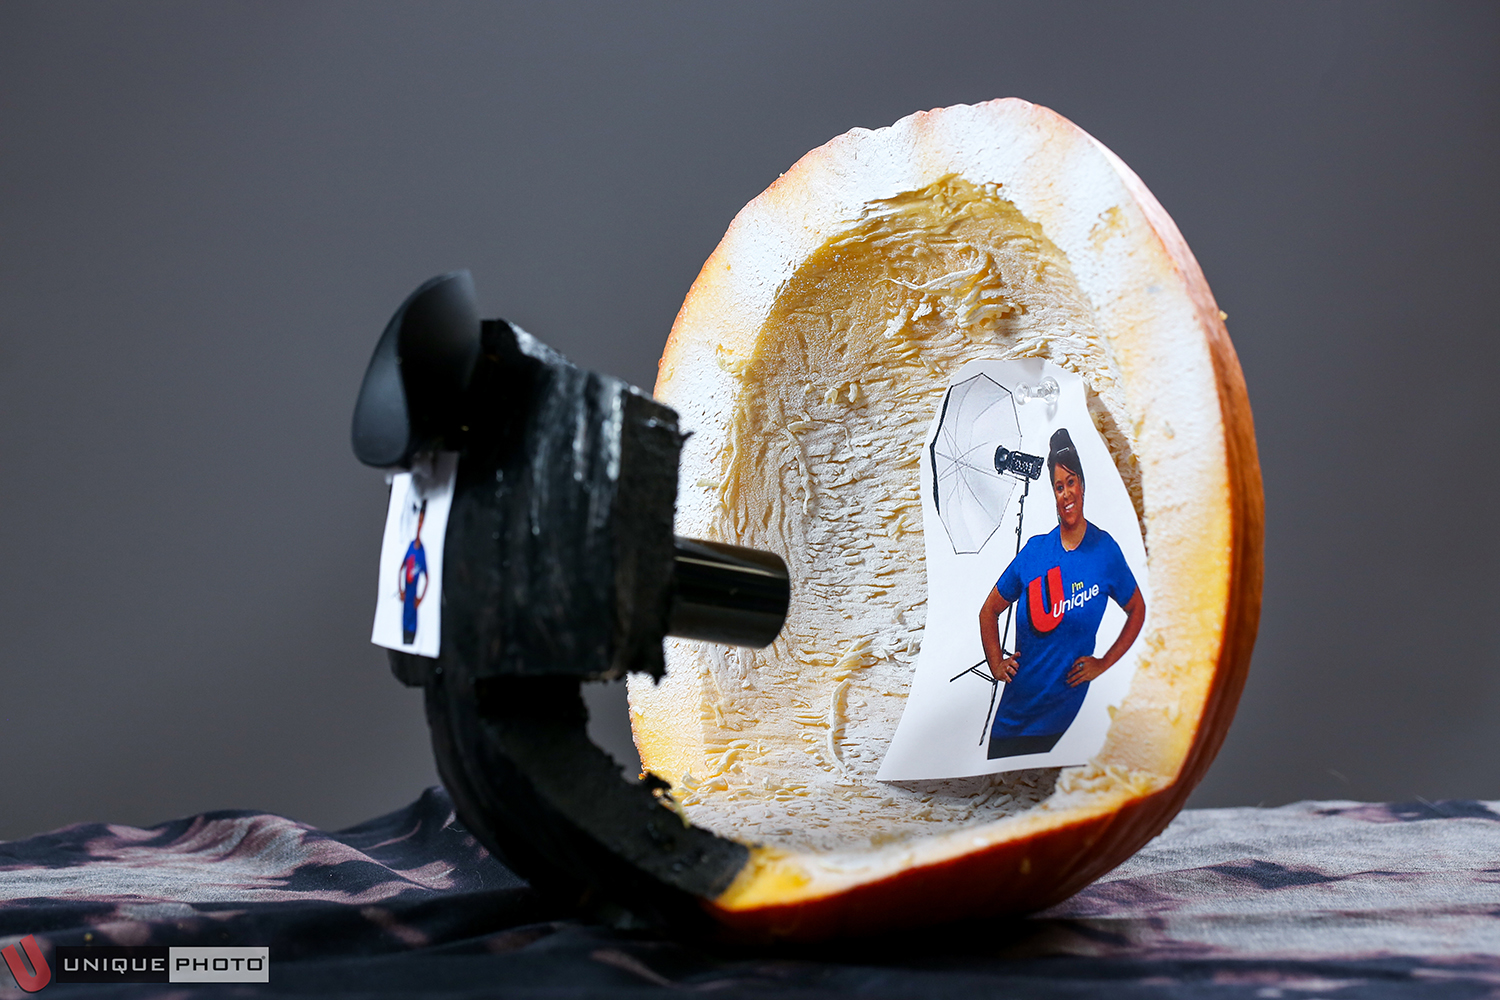 """""""20.3 MP(Megapumpkins) Mirrorless Analog Squash w/Optional Jayme V. Glamour Background"""" by Ryan Alexander. This pumpkin consists of a real, working eyecup, a pumpkin DSLR body, and an old film canister as a lens."""